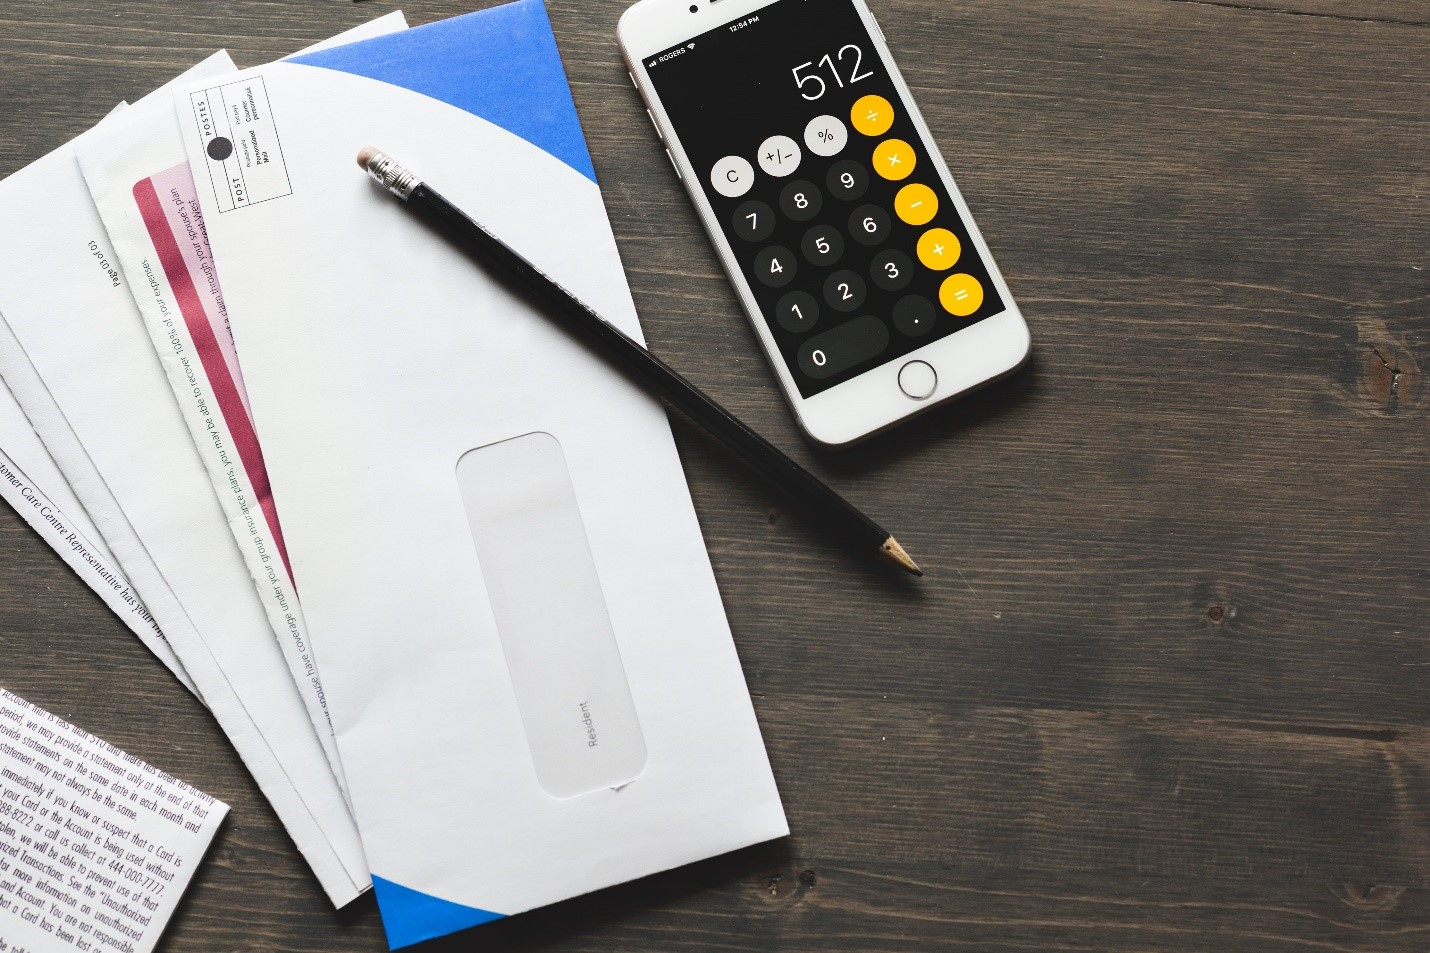 envelopes fanned out to the left of white phone showing calculator app next to black pencil on wooden surface